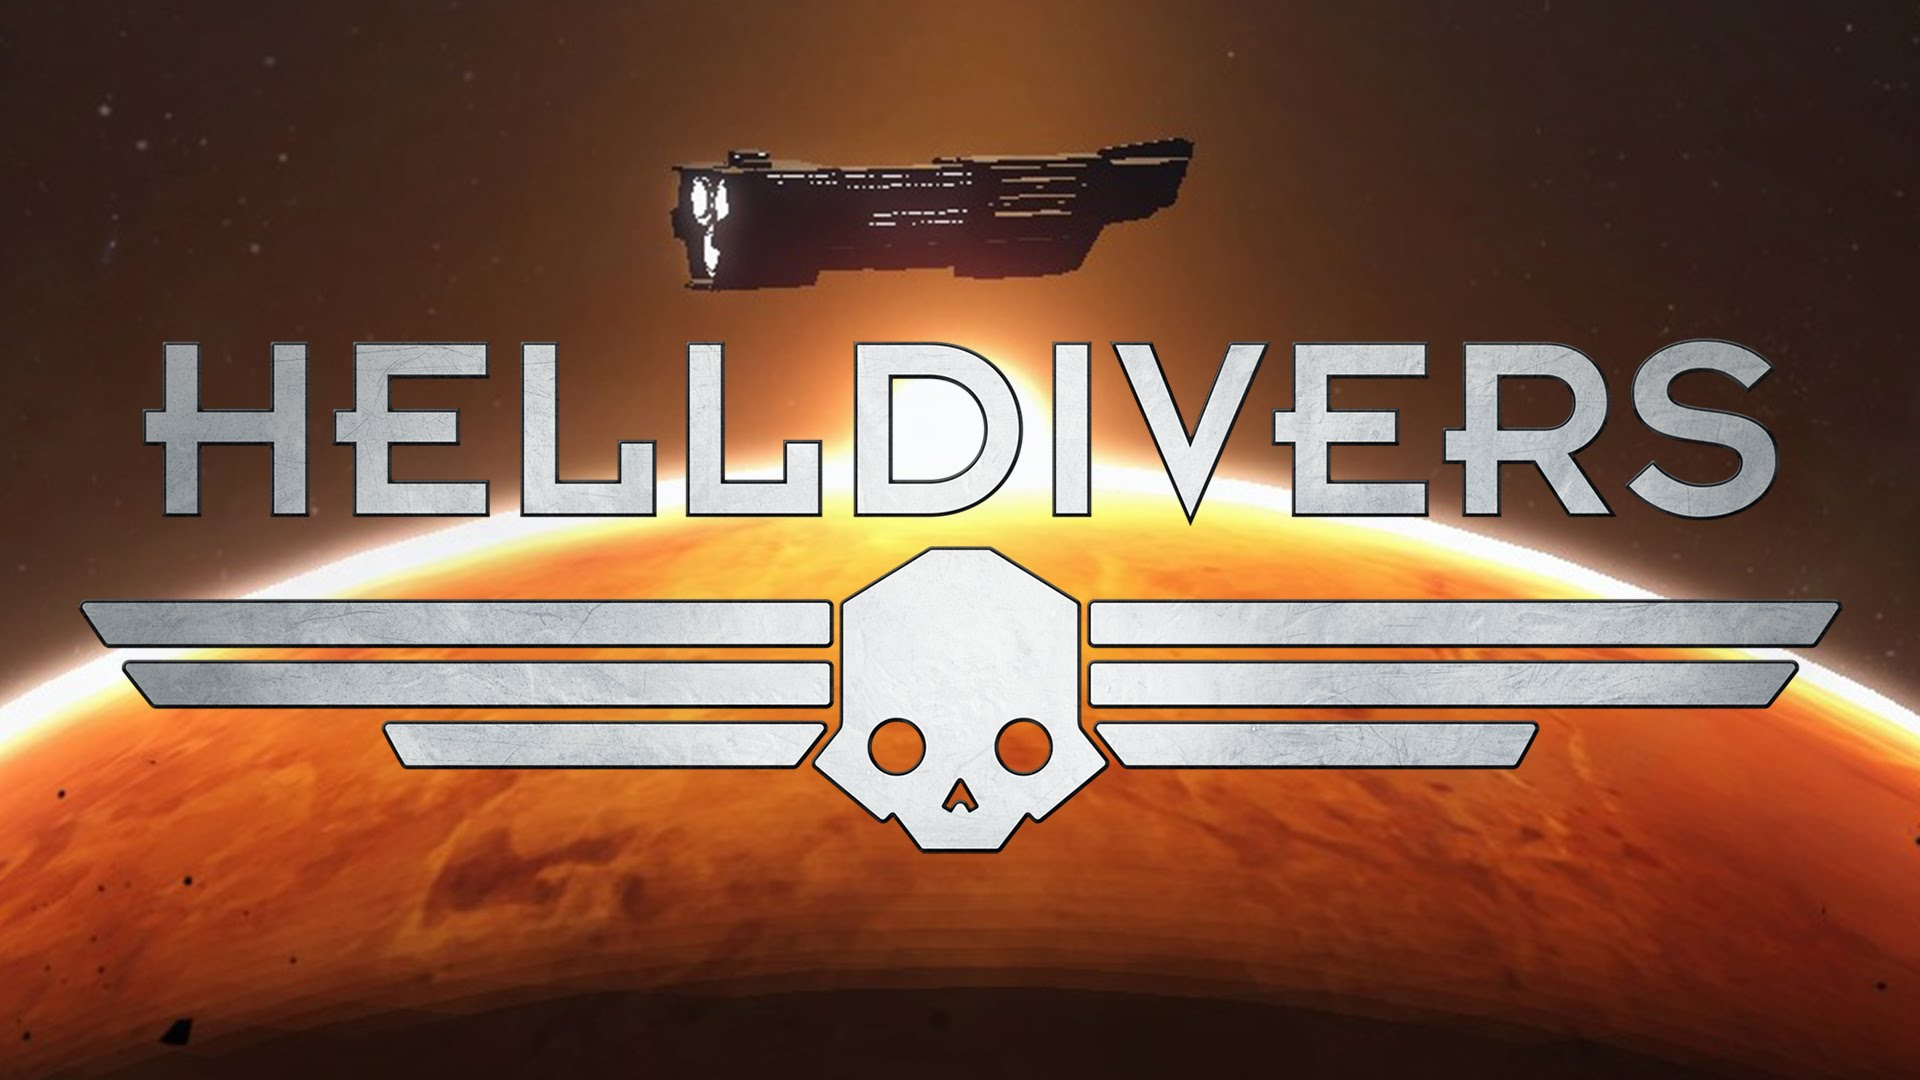 Helldivers Full hd wallpapers